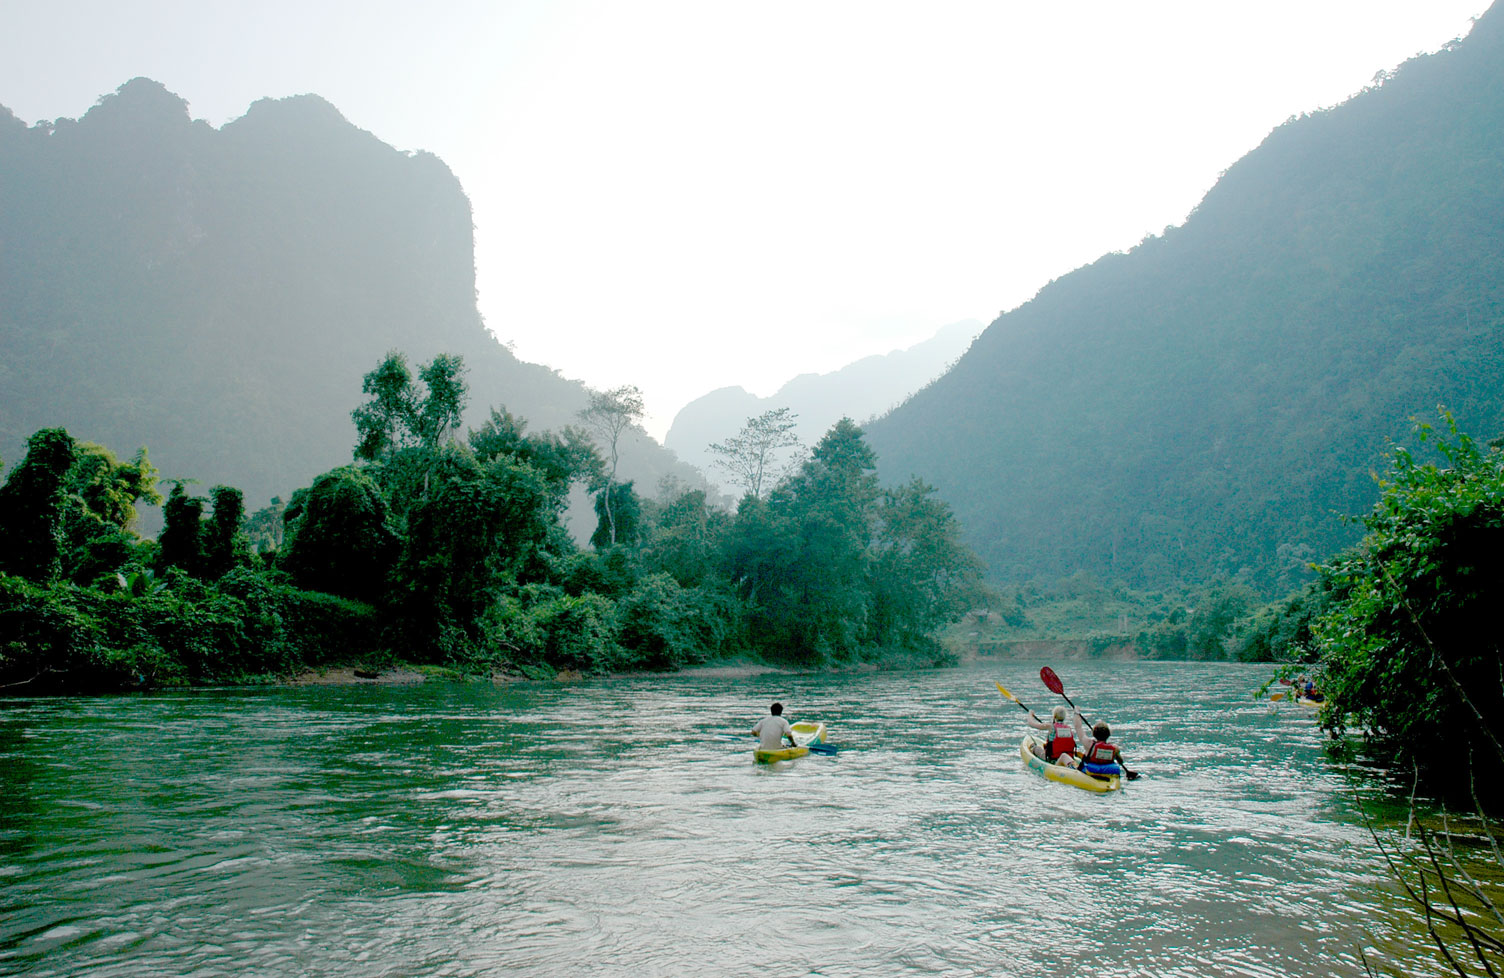 A Beginner Trip in Laos, by Karla Held Photography